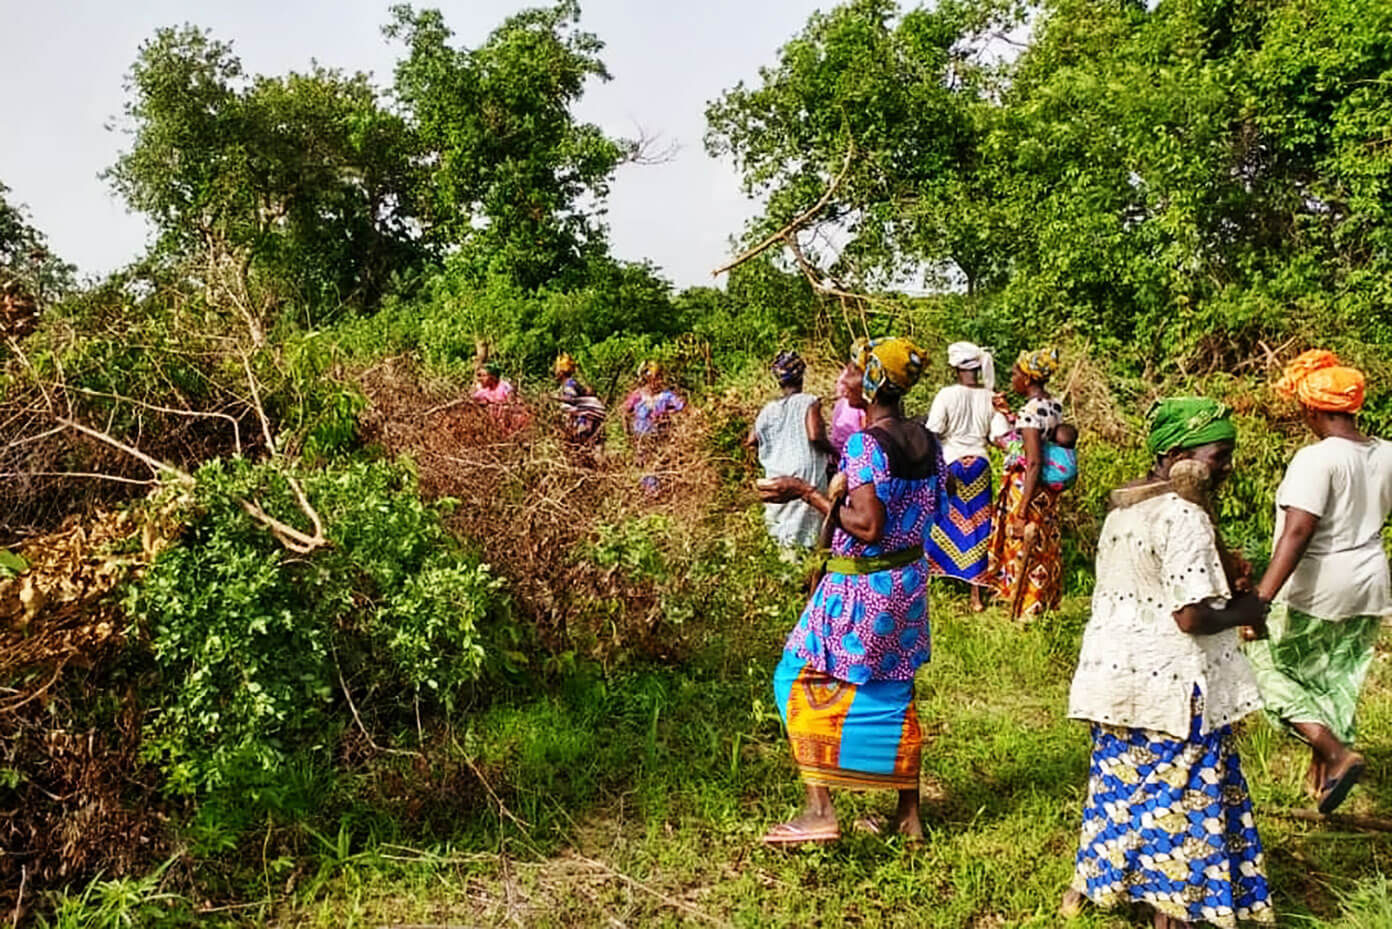 Clearing the brush to make a community garden in Mali